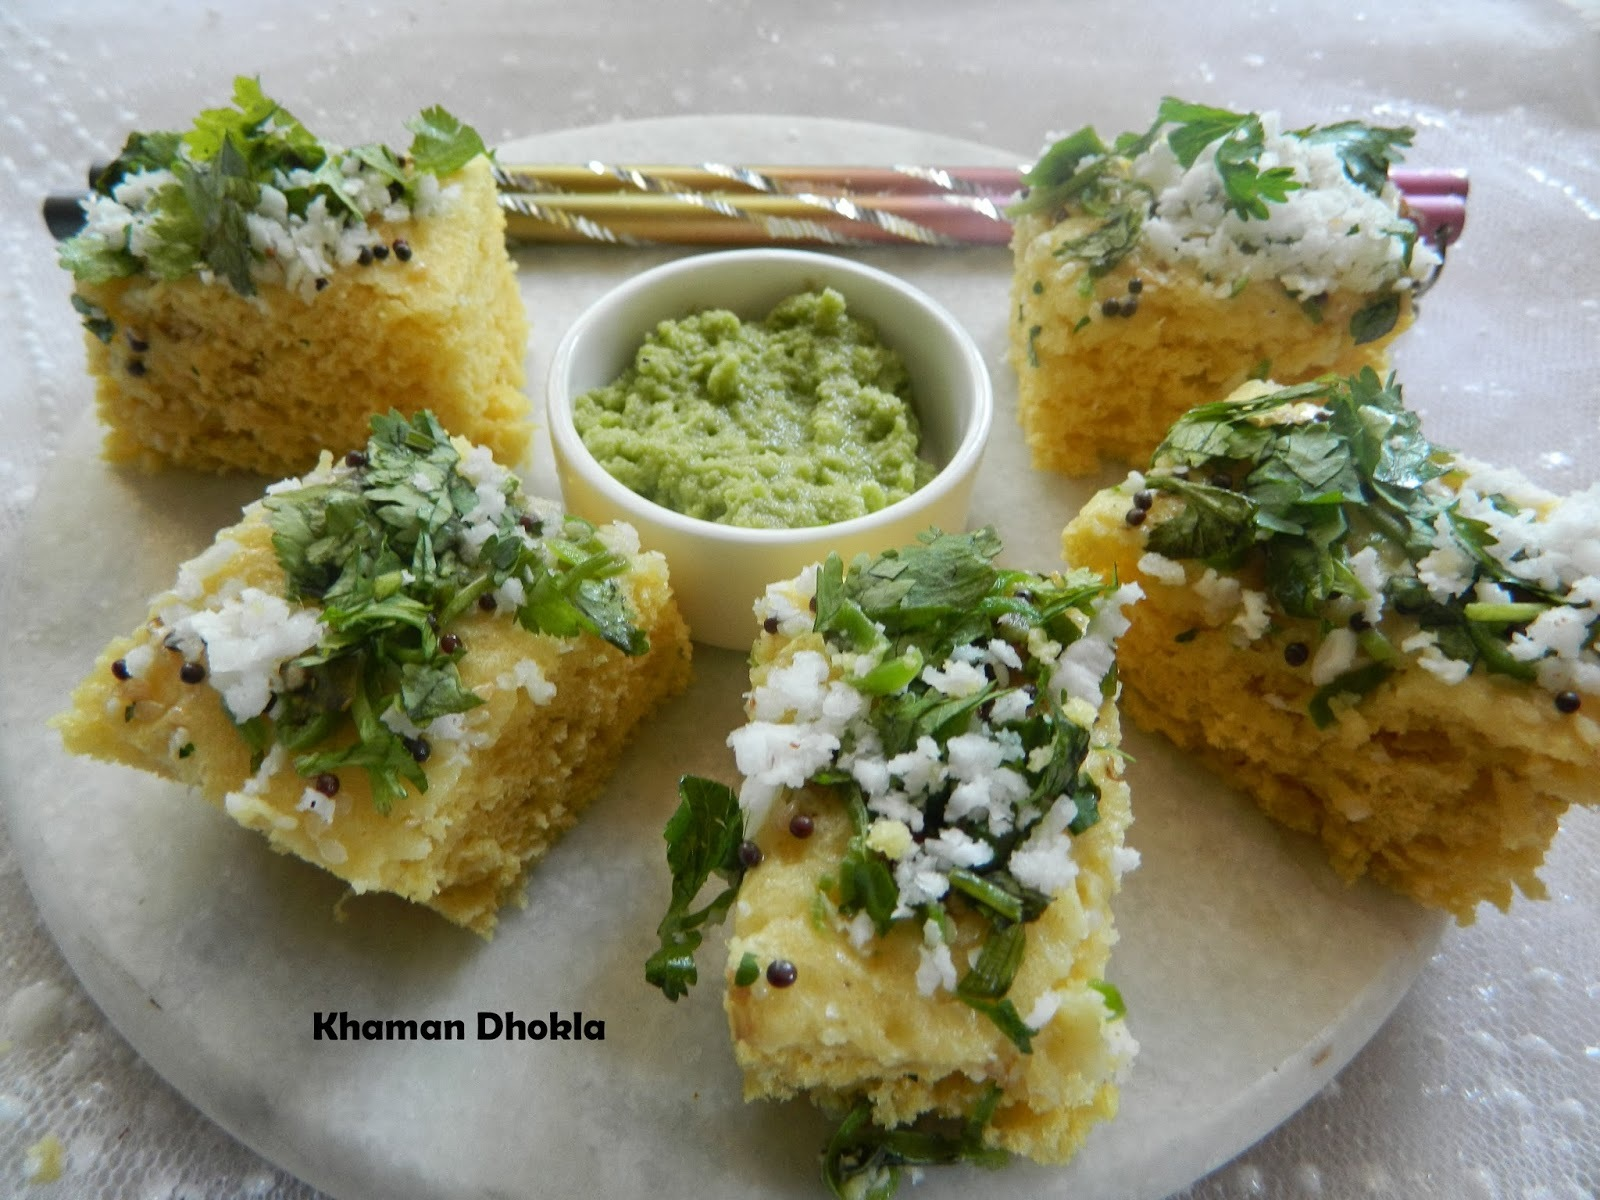 Khaman Dhokla,version 2